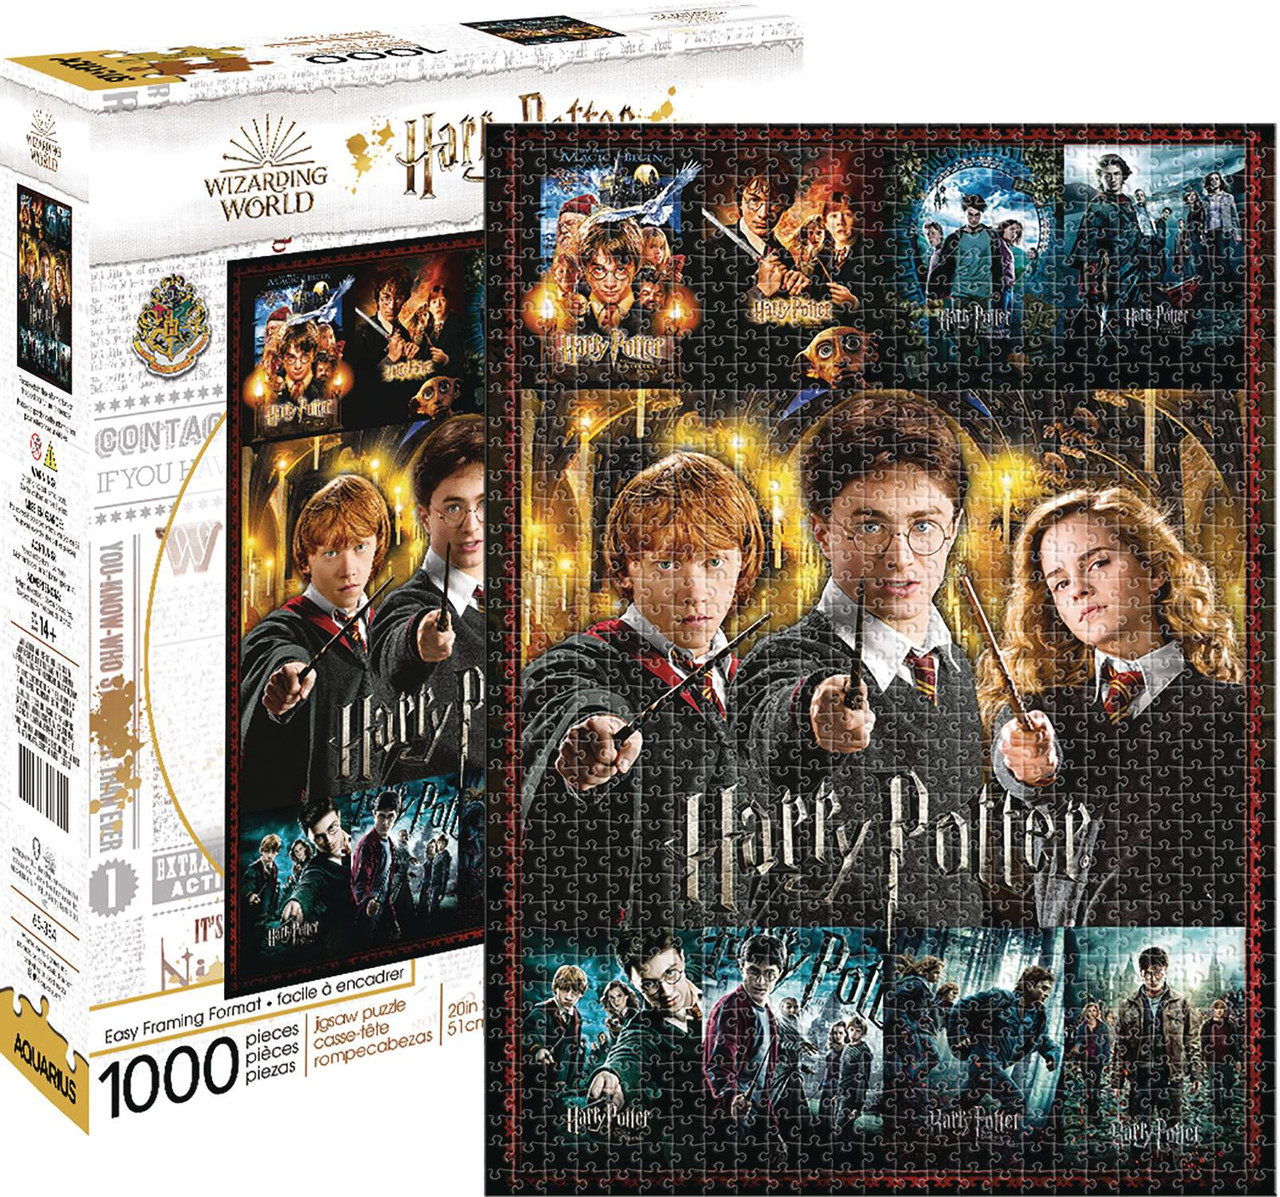 HARRY POTTER MOVIE POSTERS 1000PC PUZZLE